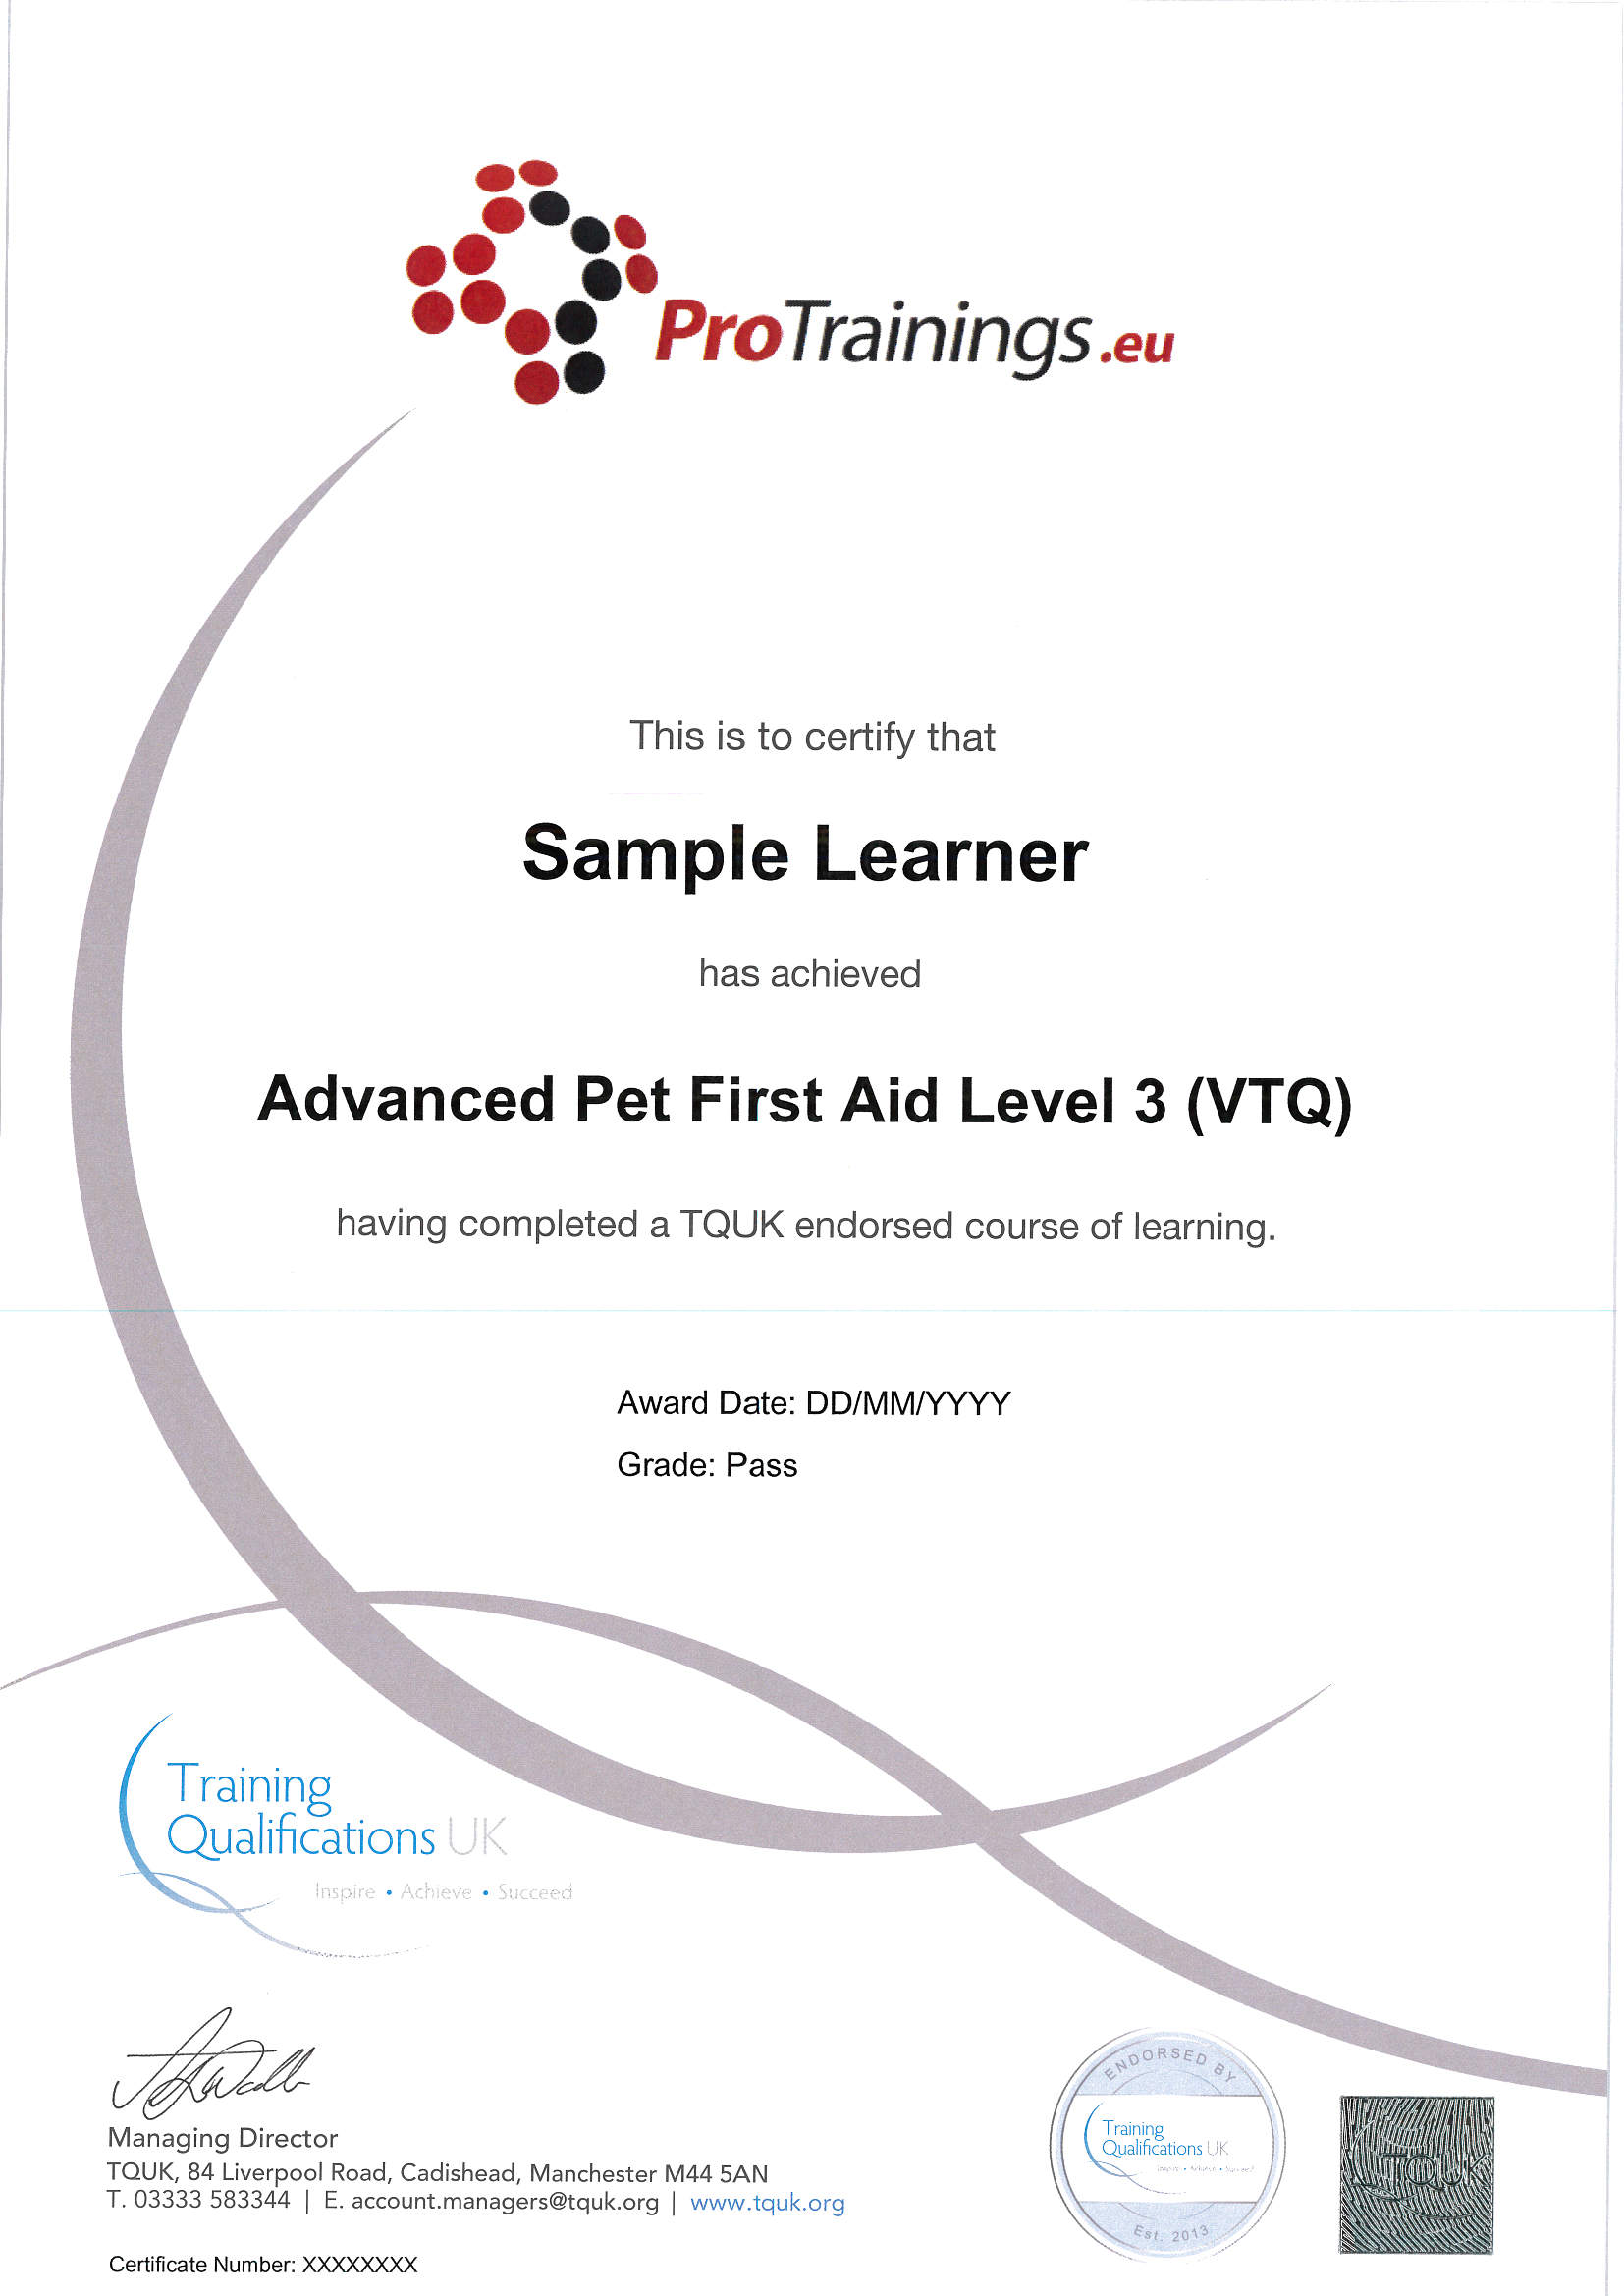 Endorsed Advanced Pet First Aid Certificate From Tquk Protrainings